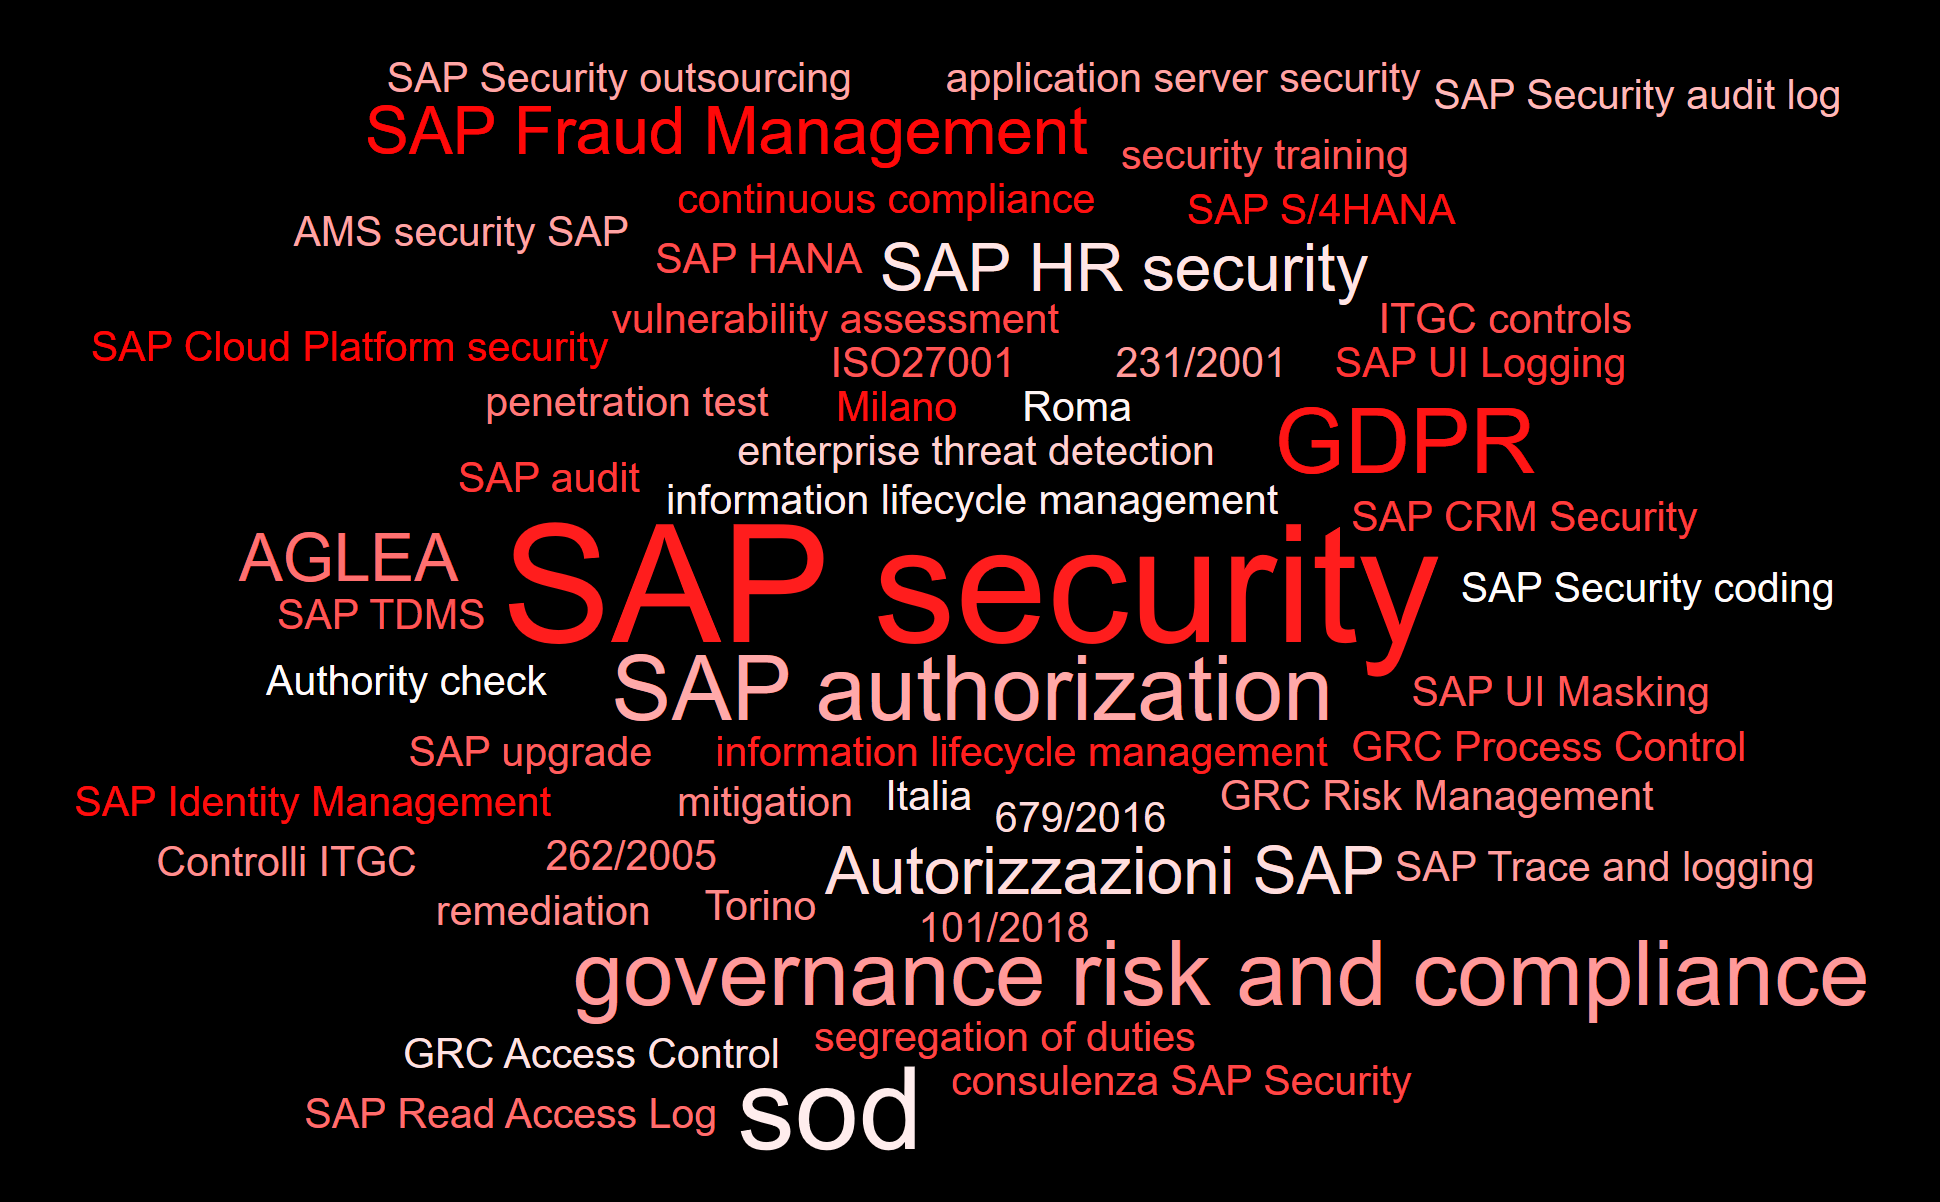 Consulenza SAP Security